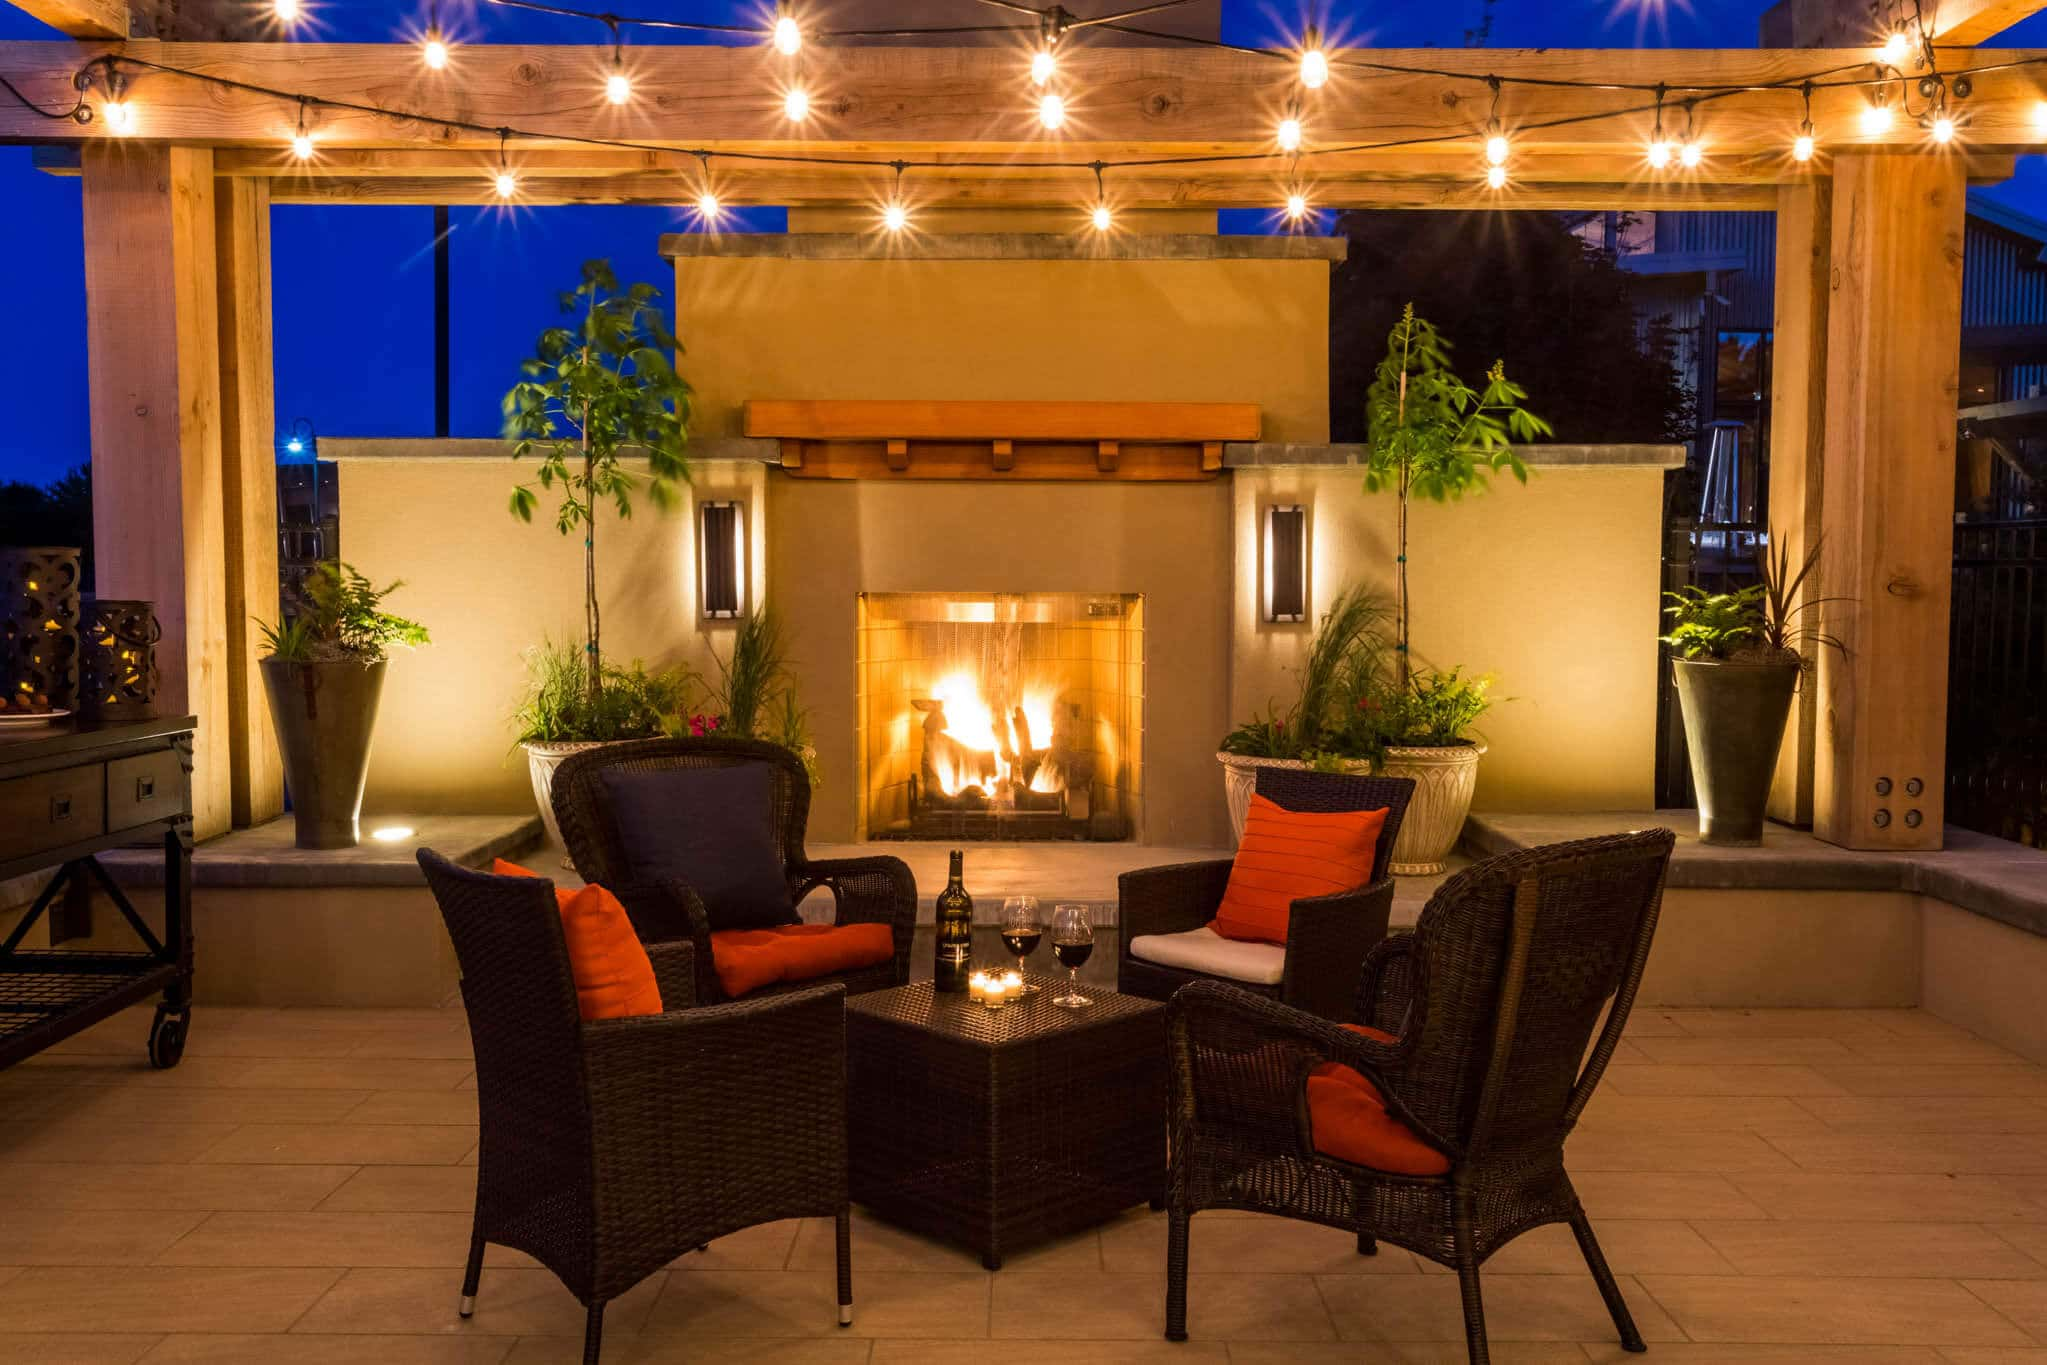 One of Richlands's best hotels, the area's only 4-star stay!